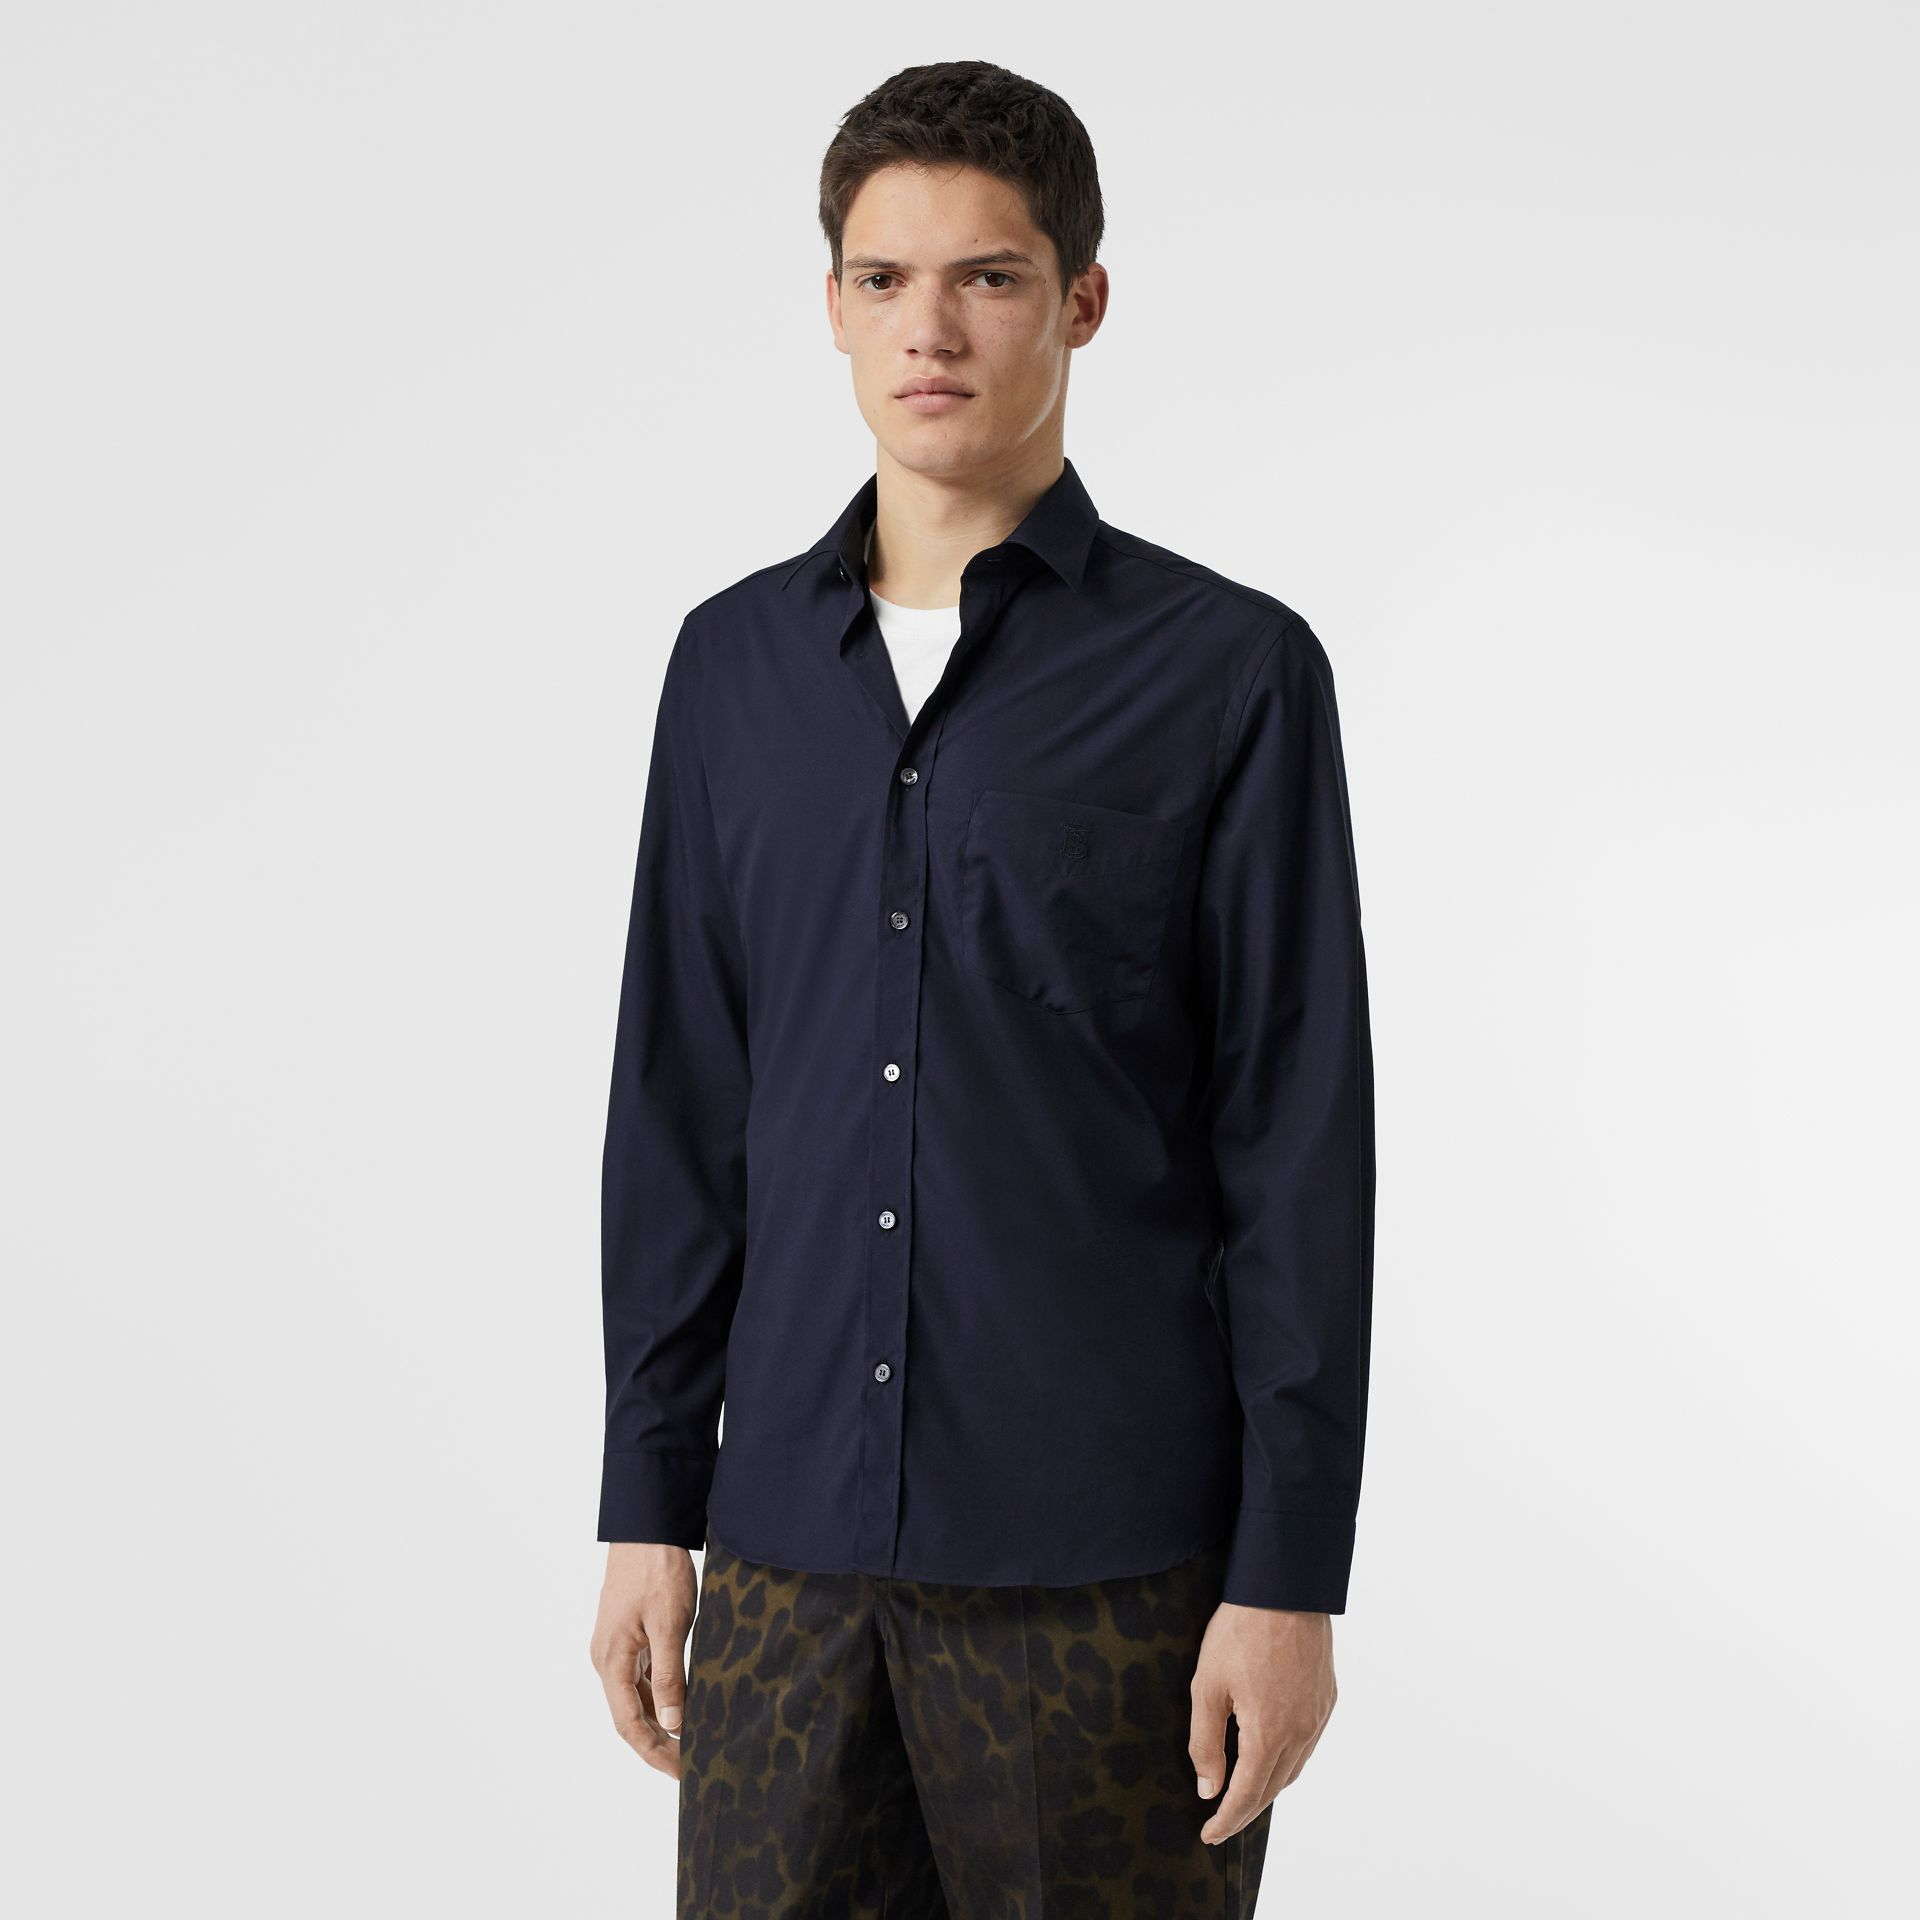 Monogram Motif Stretch Cotton Poplin Shirt in Navy - Men | Burberry United Kingdom - gallery image 4